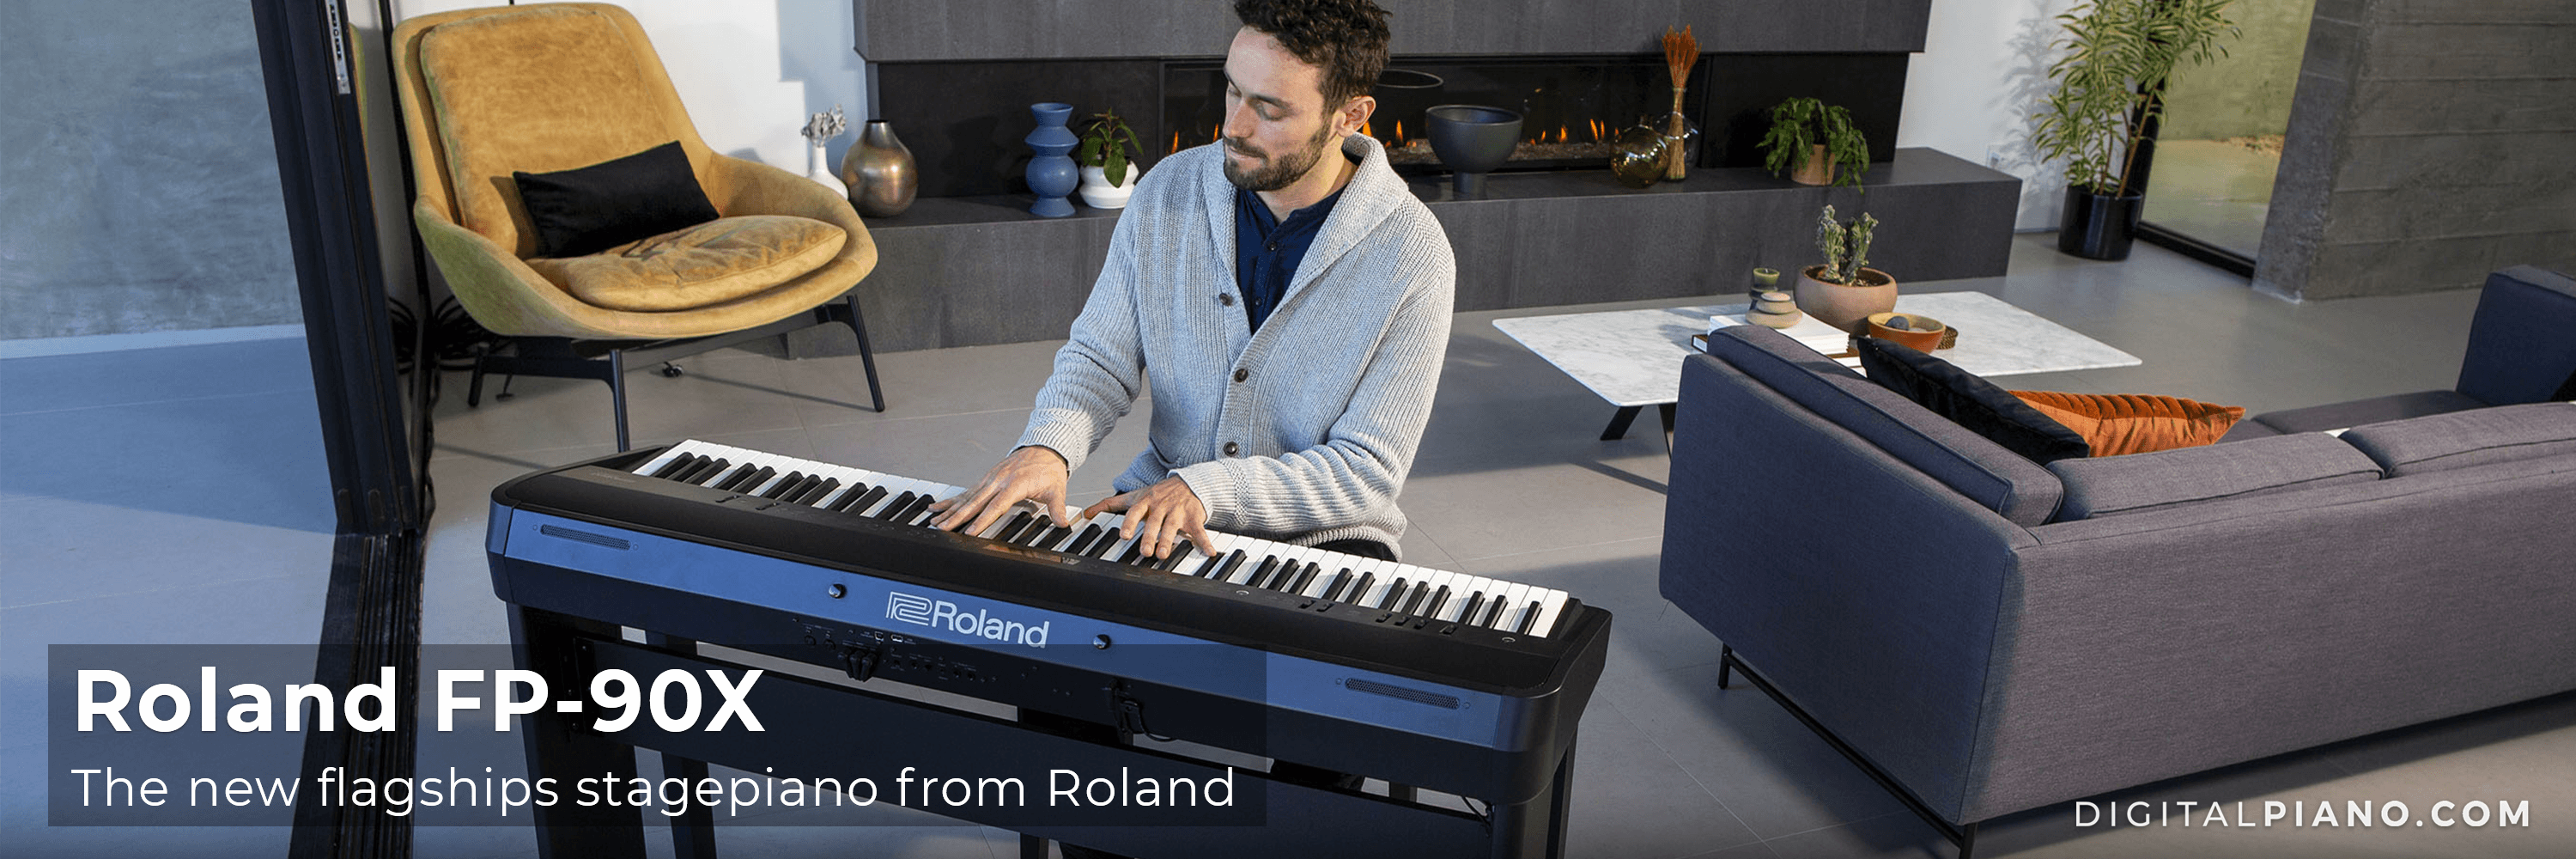 The new Roland FP-90X